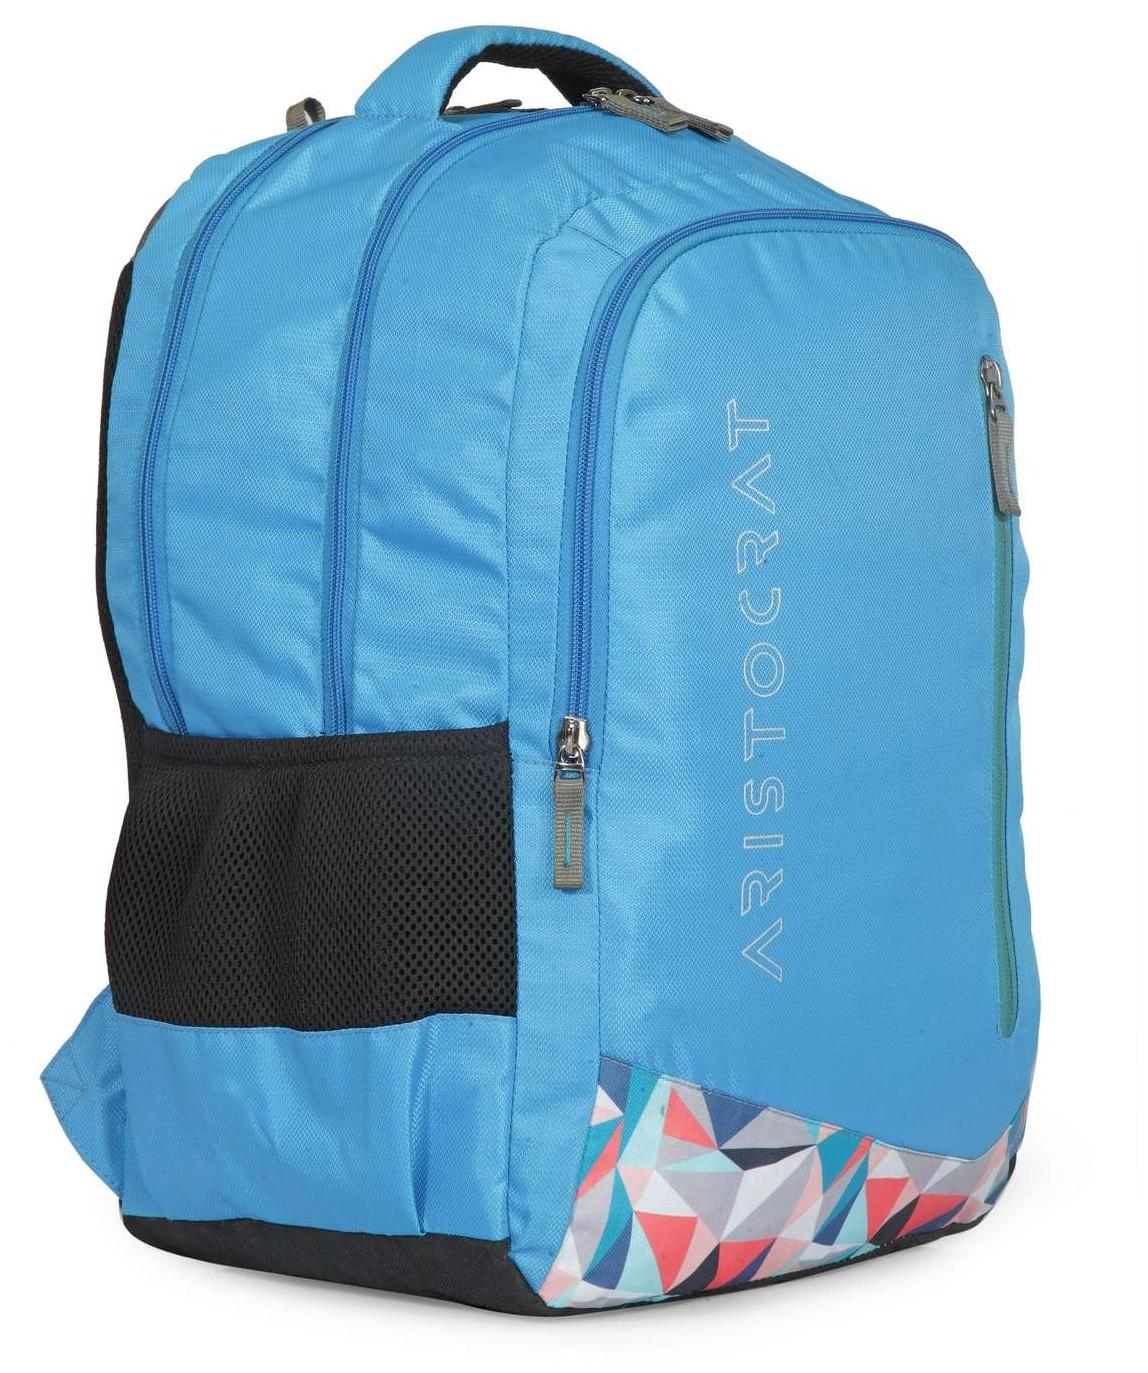 423510ba4cdc Buy ARISTOCRAT WEGO 1 SCHOOL BAG BLUE Online at Low Prices in India -  Paytmmall.com